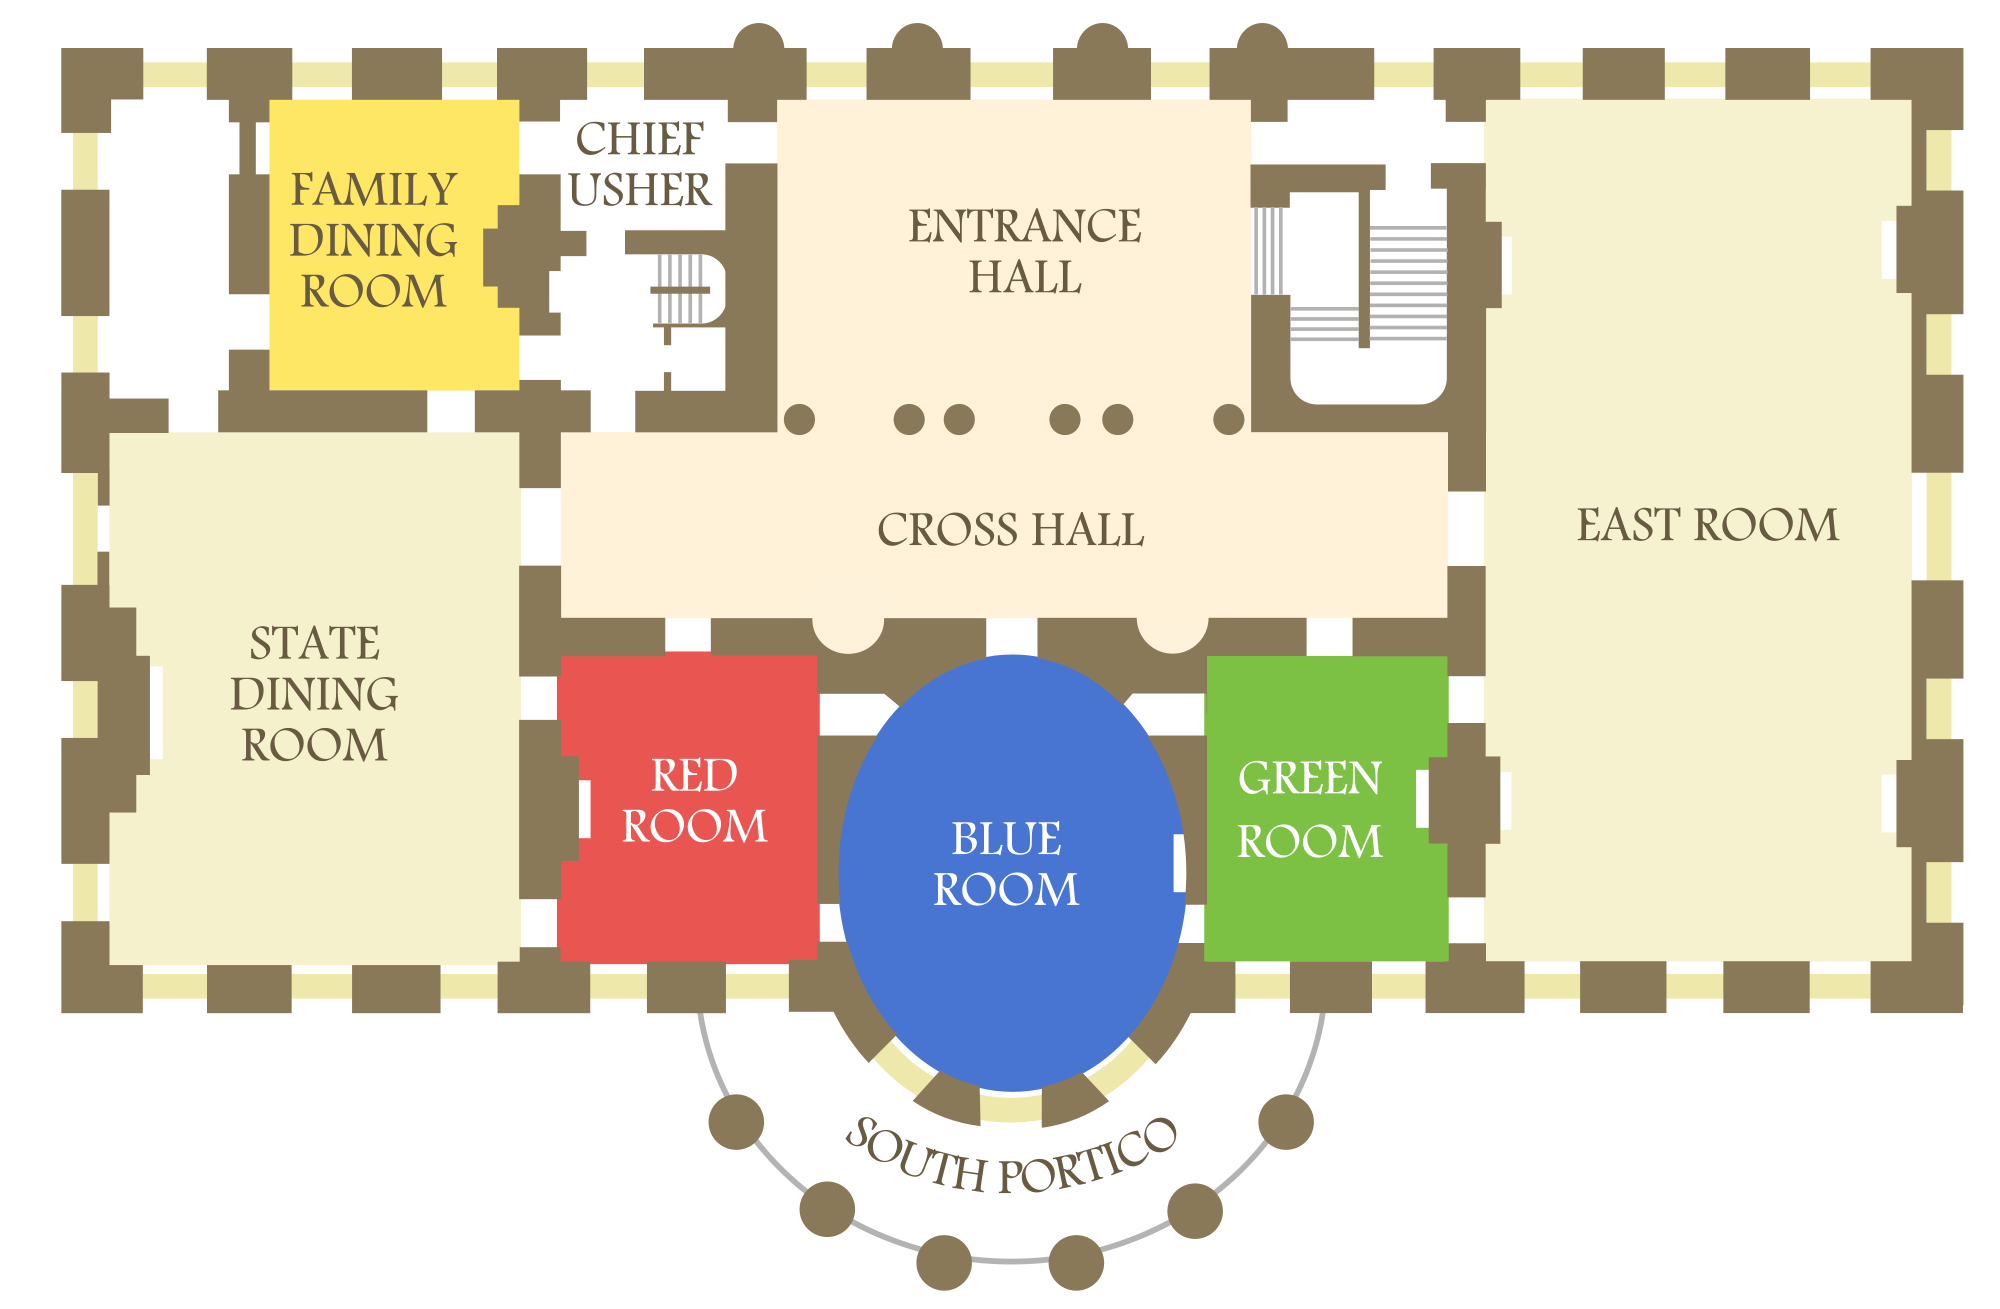 west wing office space layout circa 1990. West Wing Office Space Layout Circa 1990